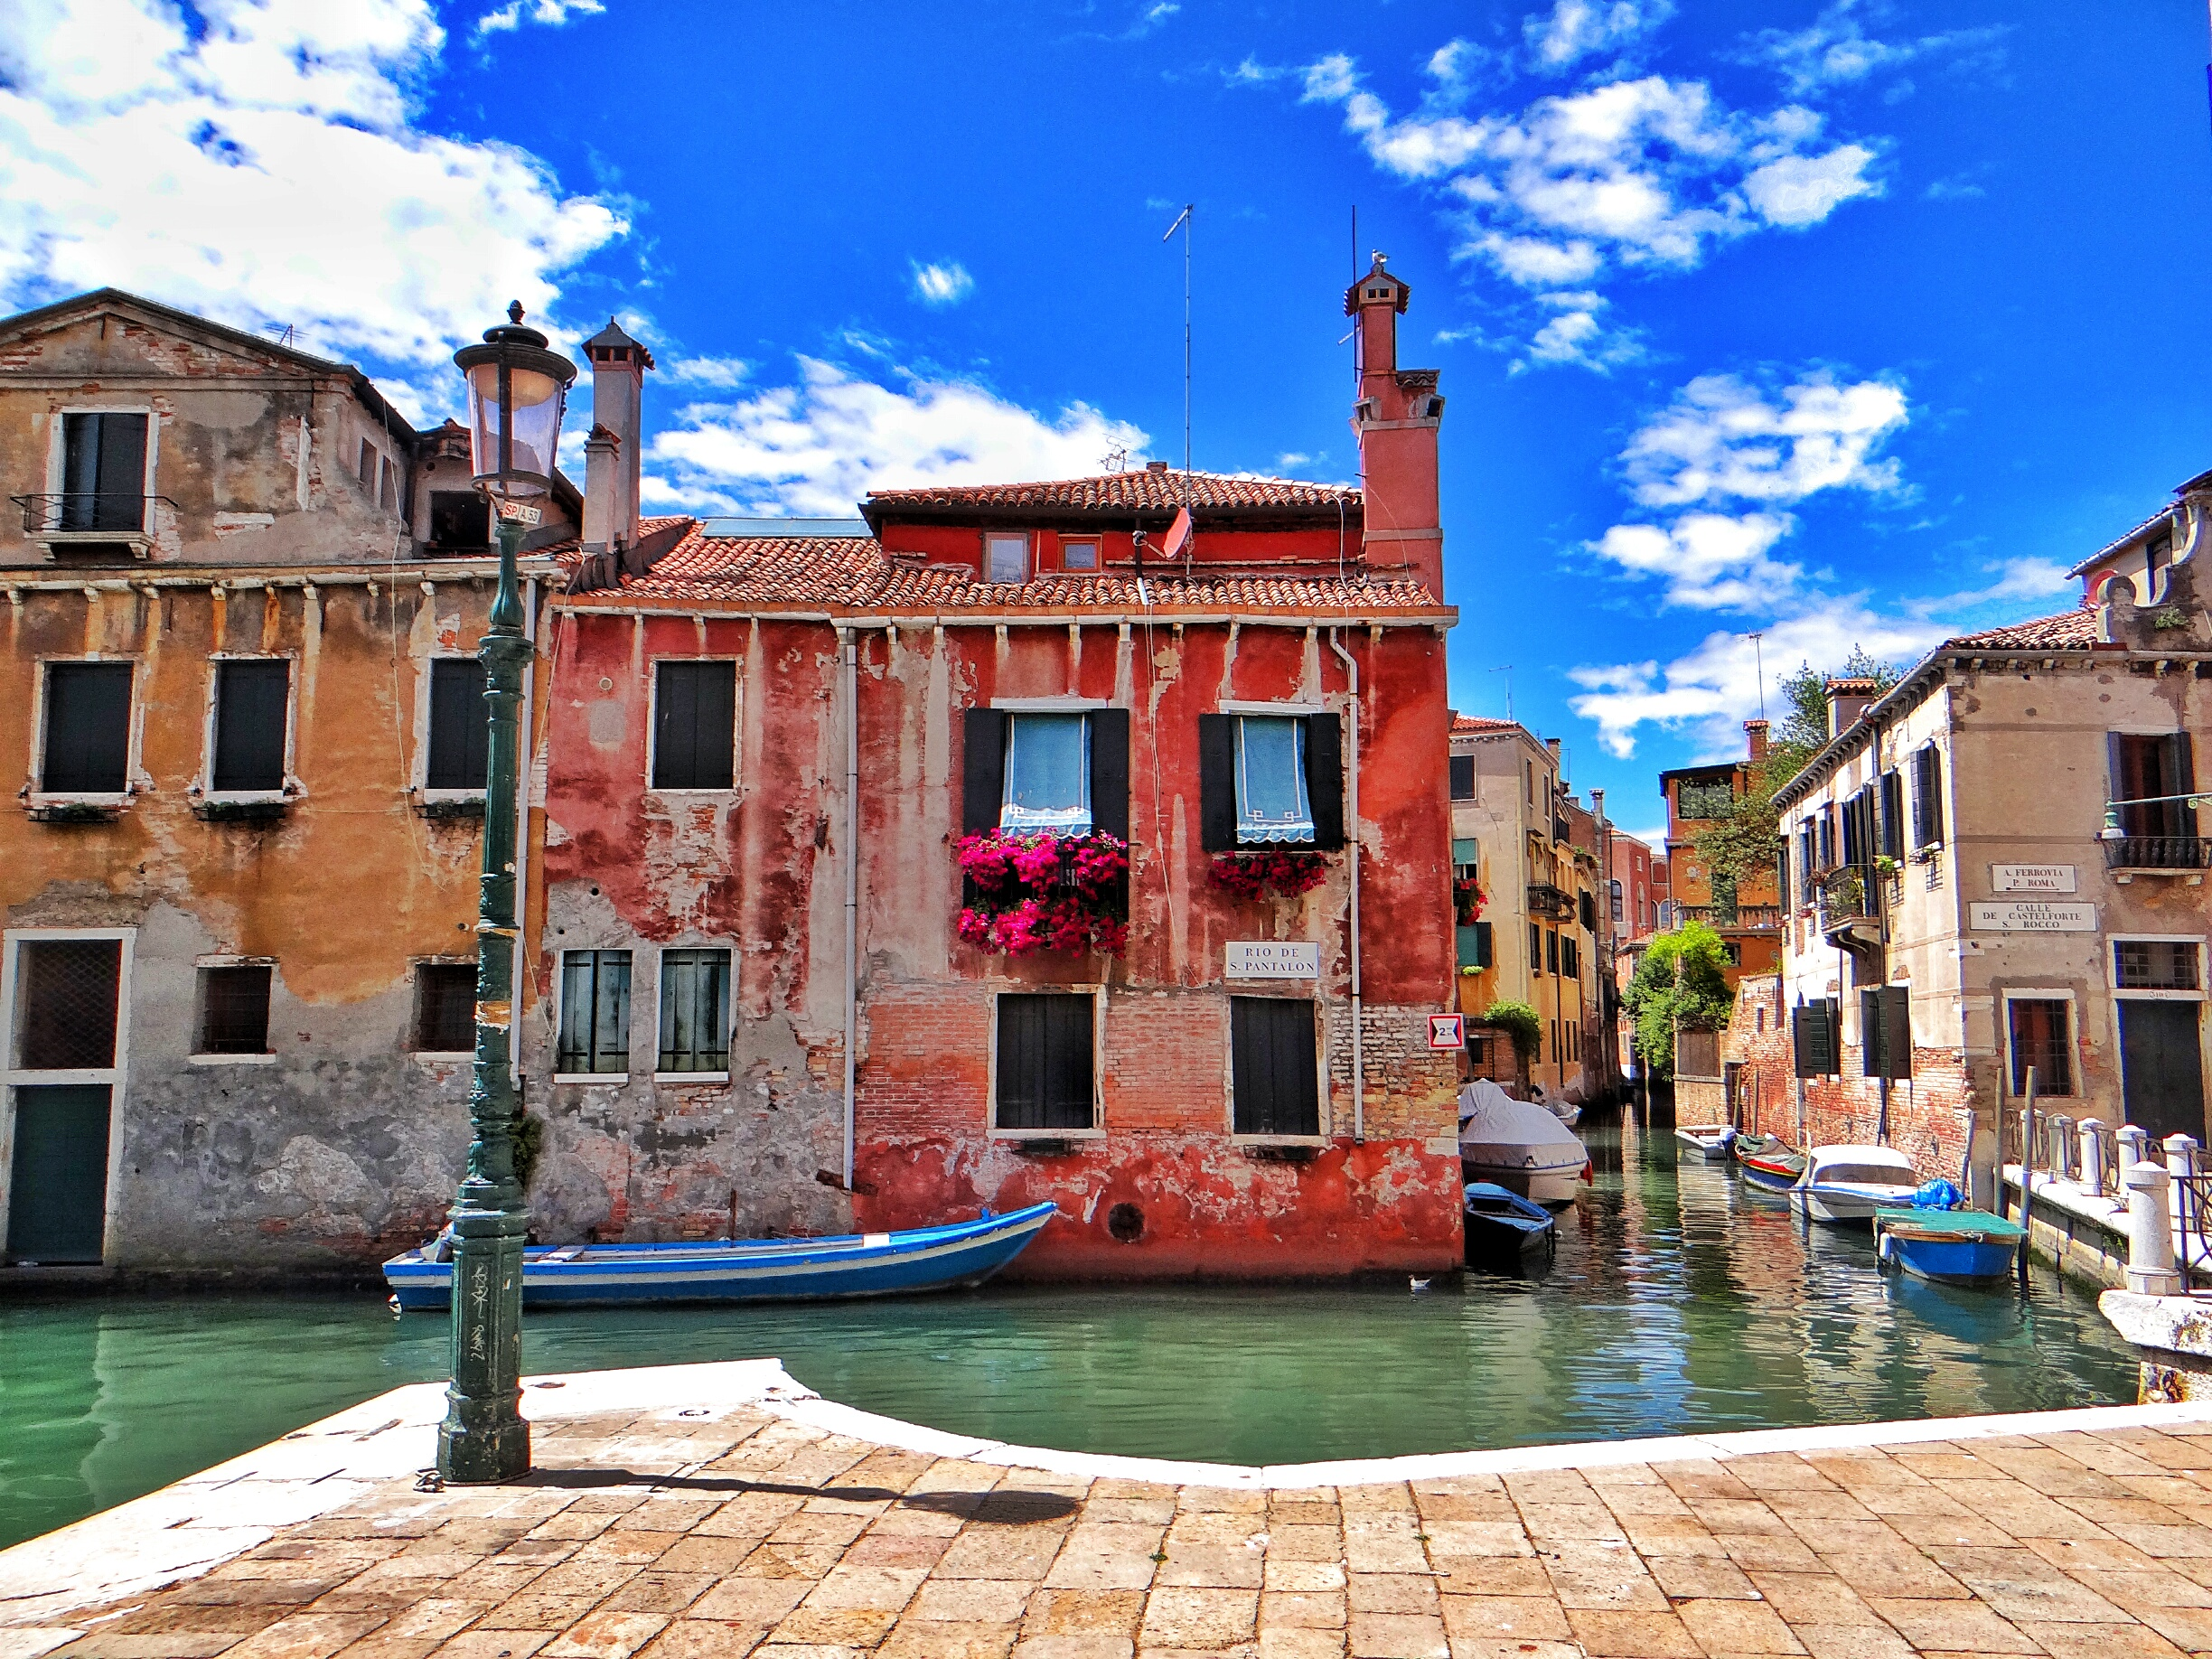 One day in Venice: places you must see | Walking map ...